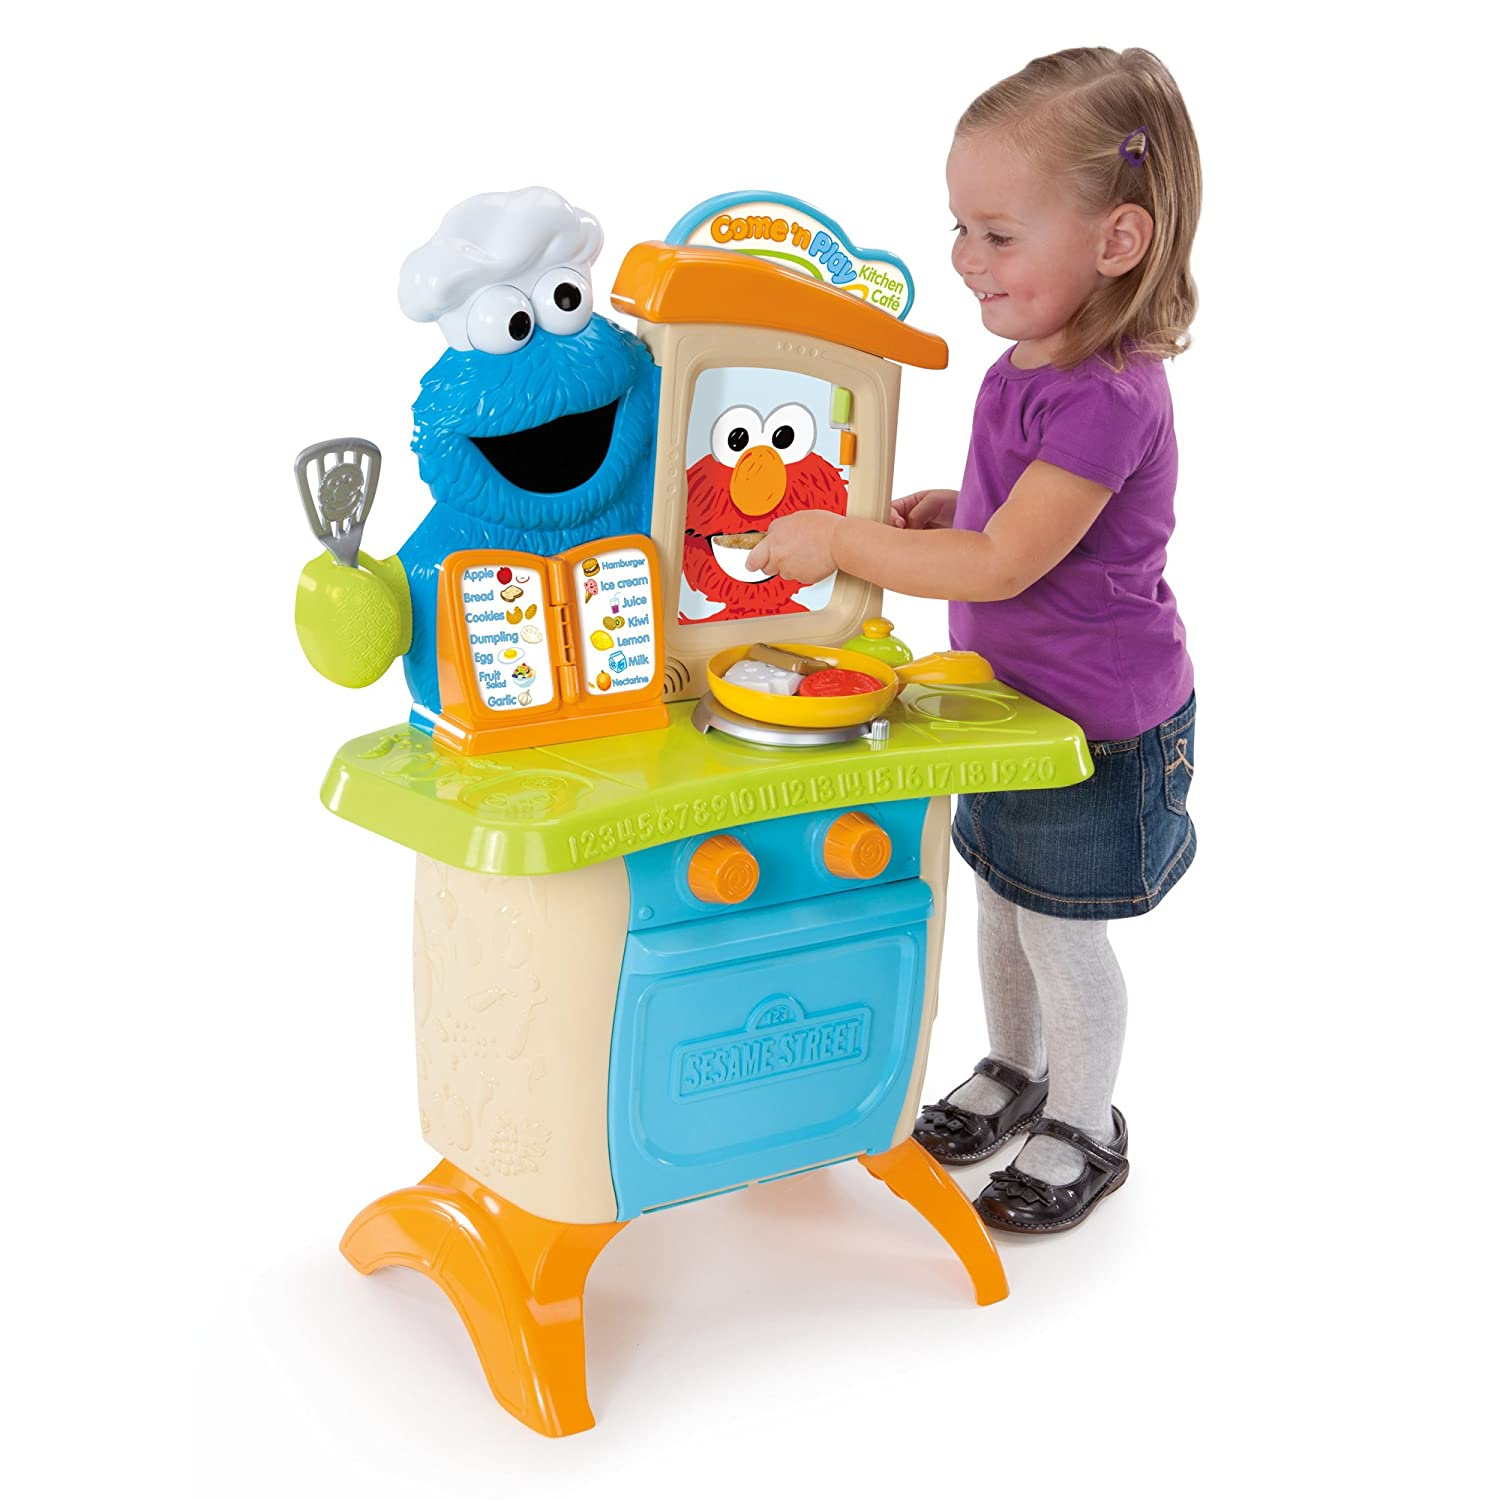 amazoncom playskool sesame street come 'n play cookie monster  - amazoncom playskool sesame street come 'n play cookie monster kitchencafé playset toys  games